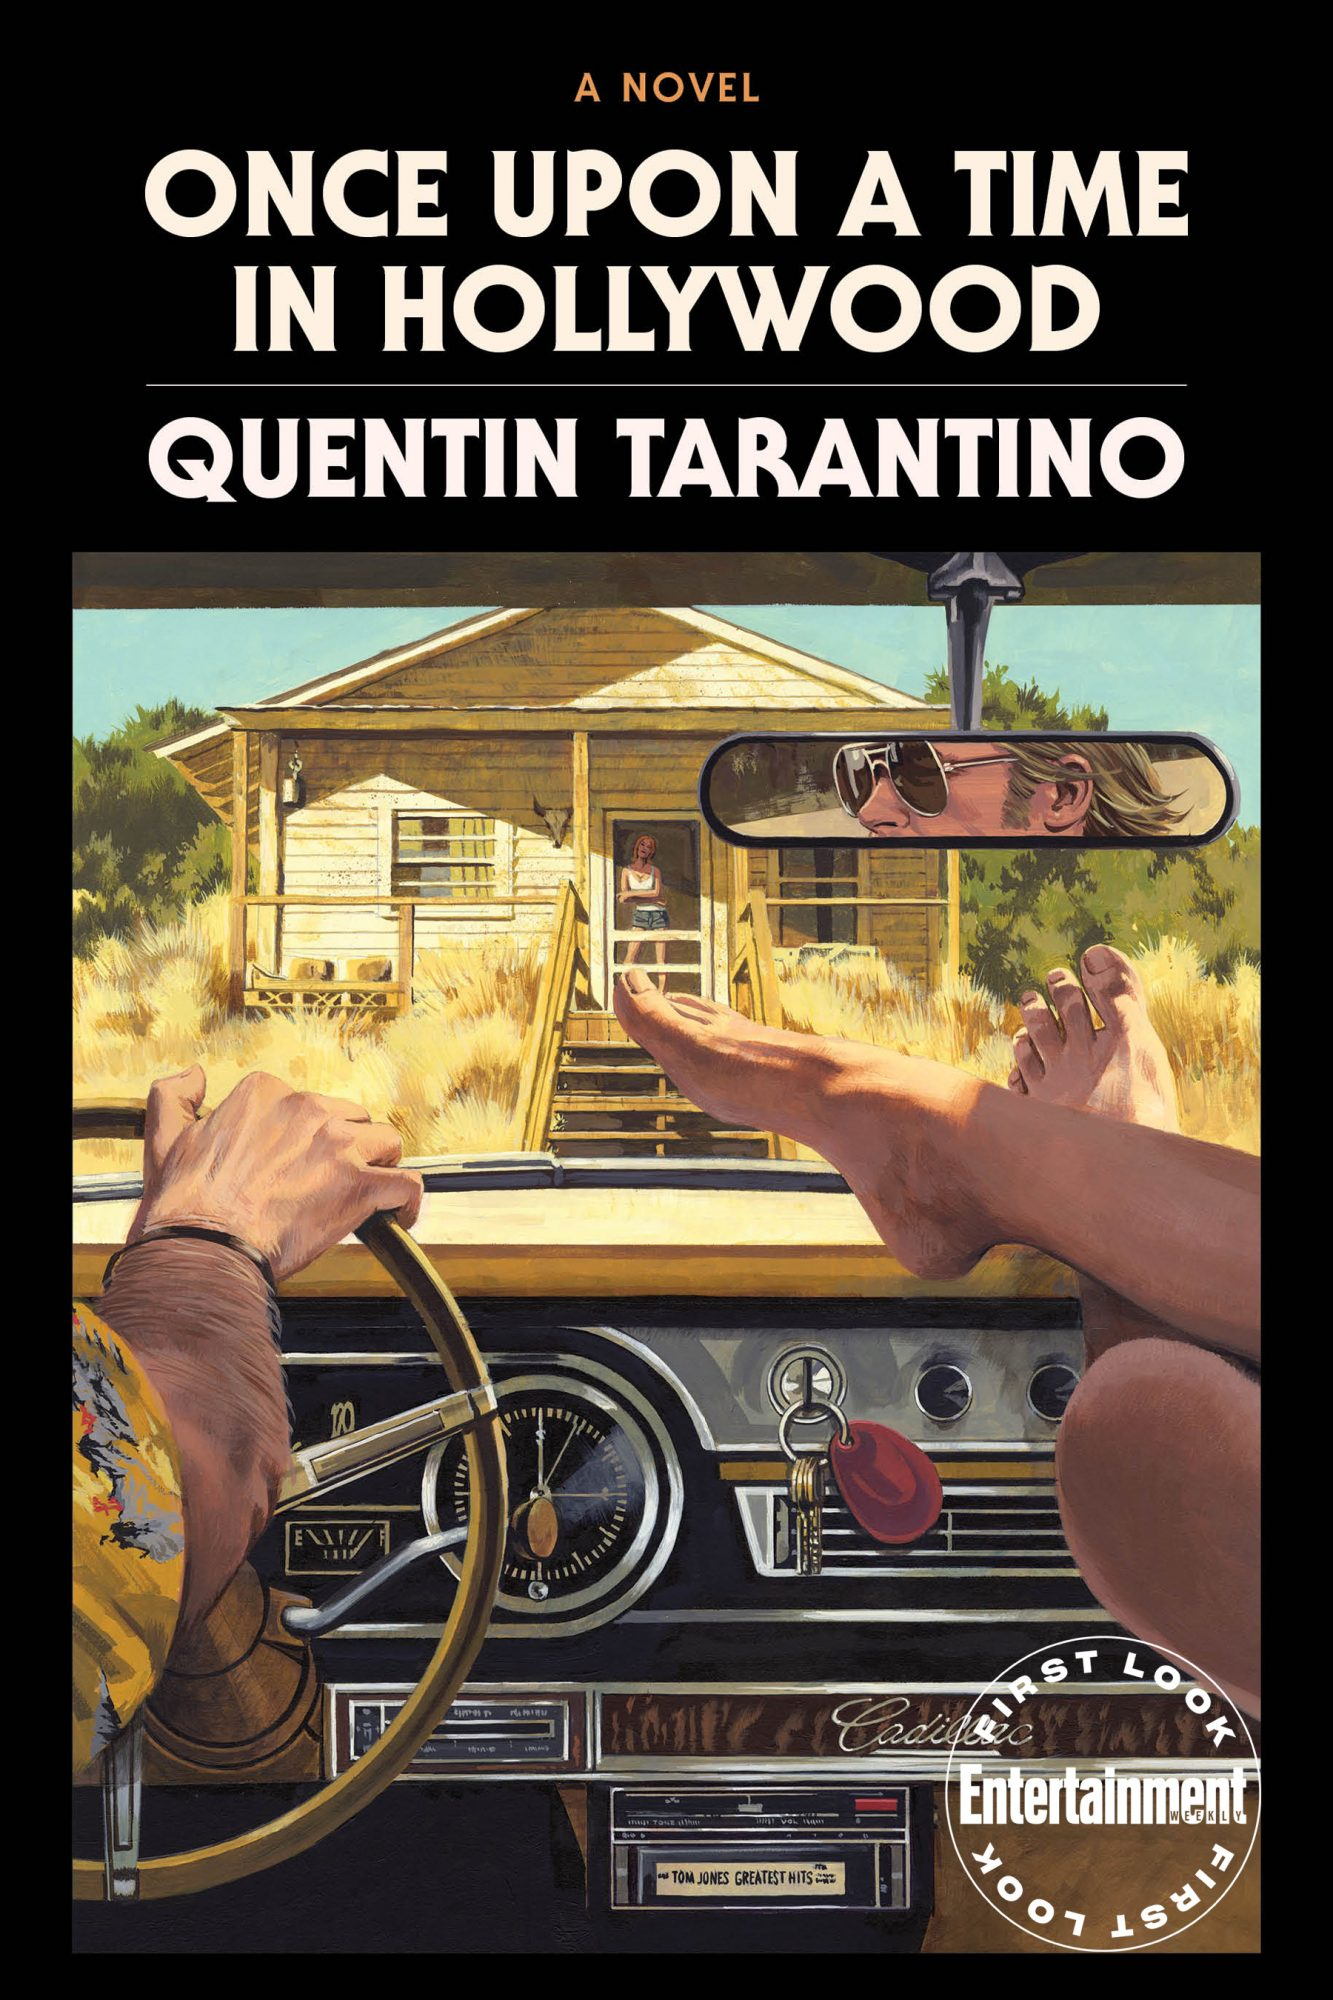 Once Upon a Time in Hollywood - A Novel